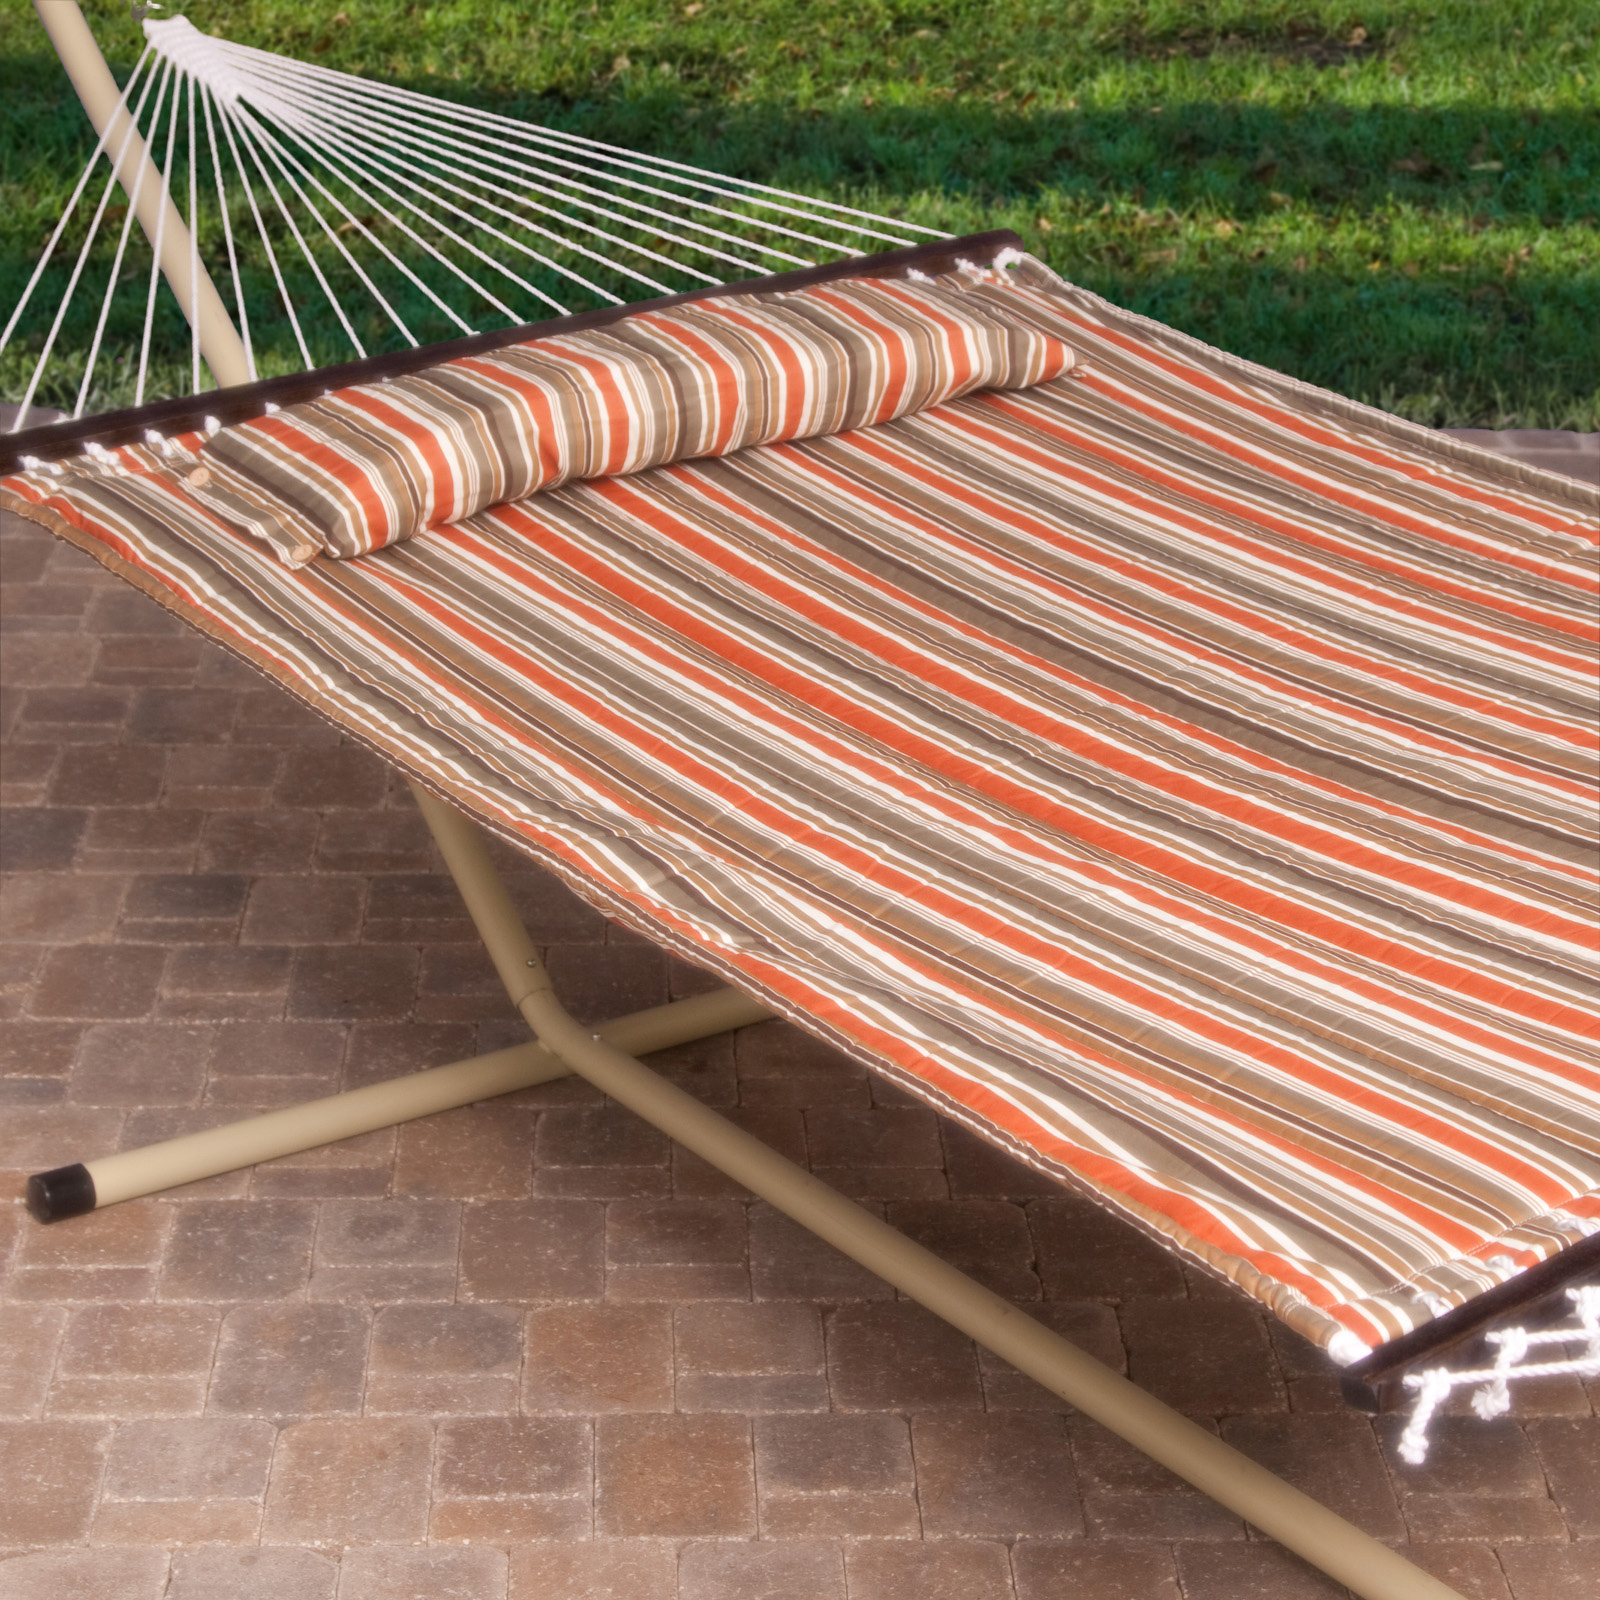 tropical saving vivere watch space youtube with steel hammock review person stand stands hammocks double